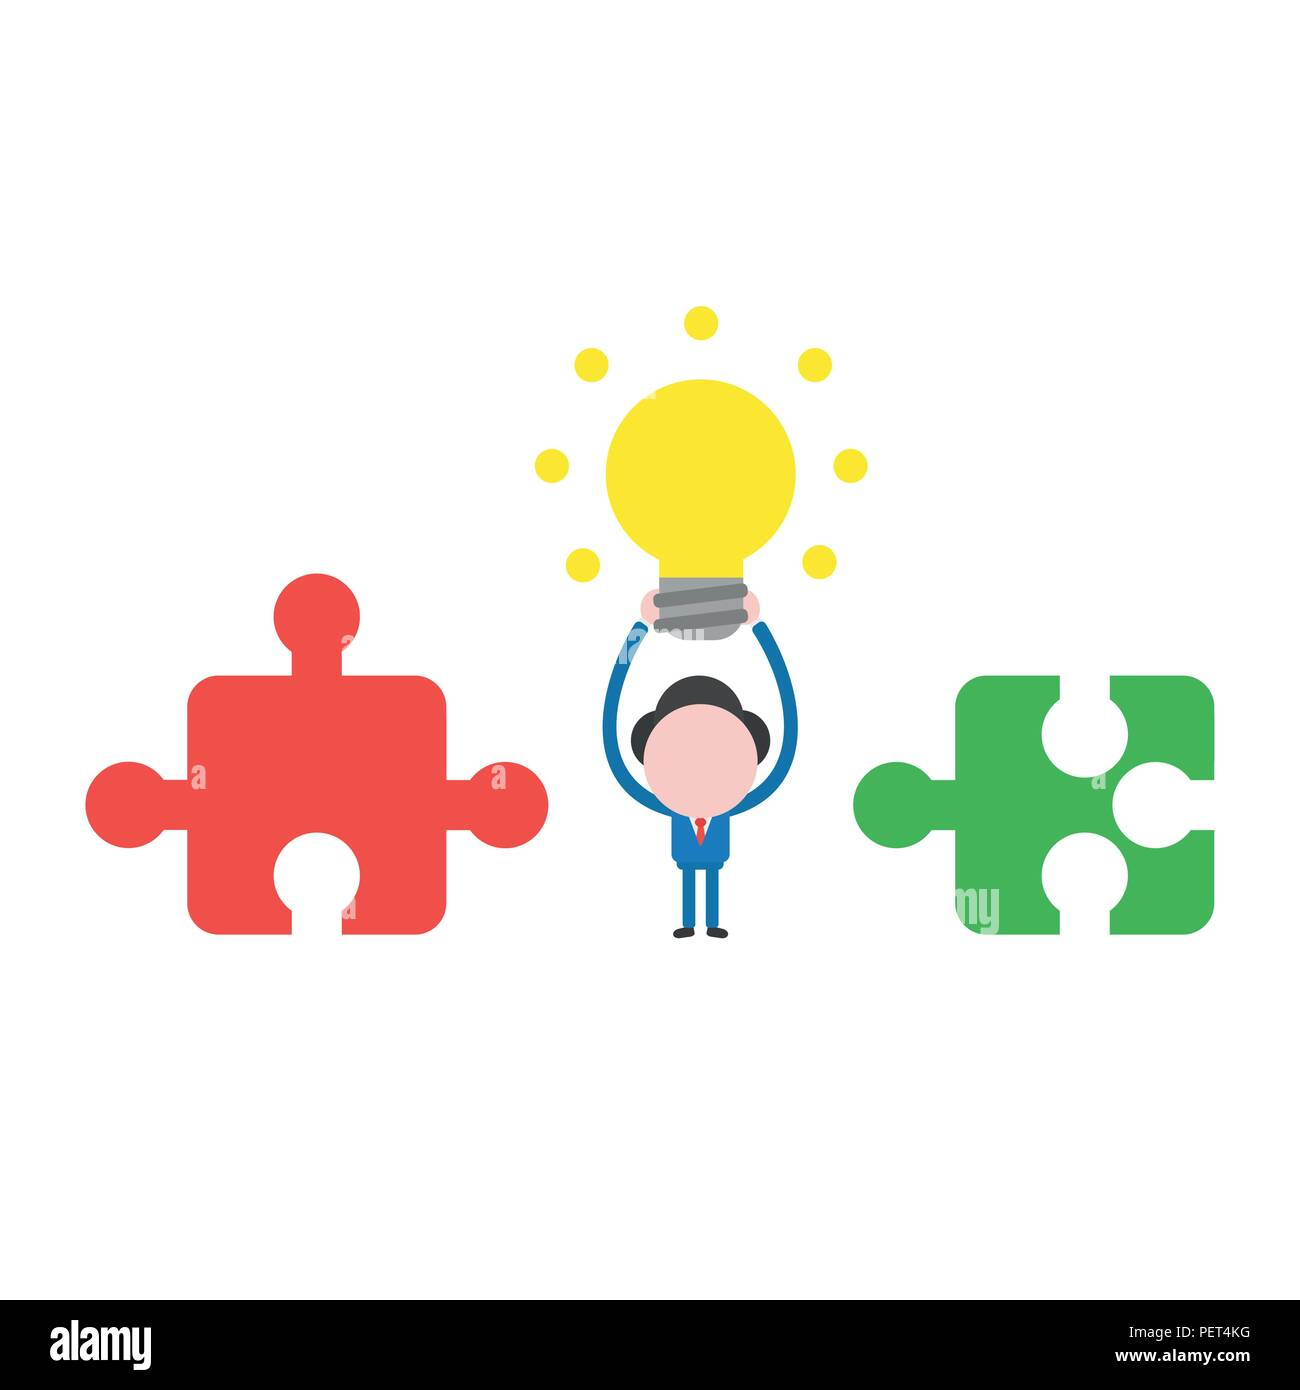 Vector illustration businessman mascot character between incompatible jigsaw puzzle pieces and holding up glowing light bulb idea. Stock Vector